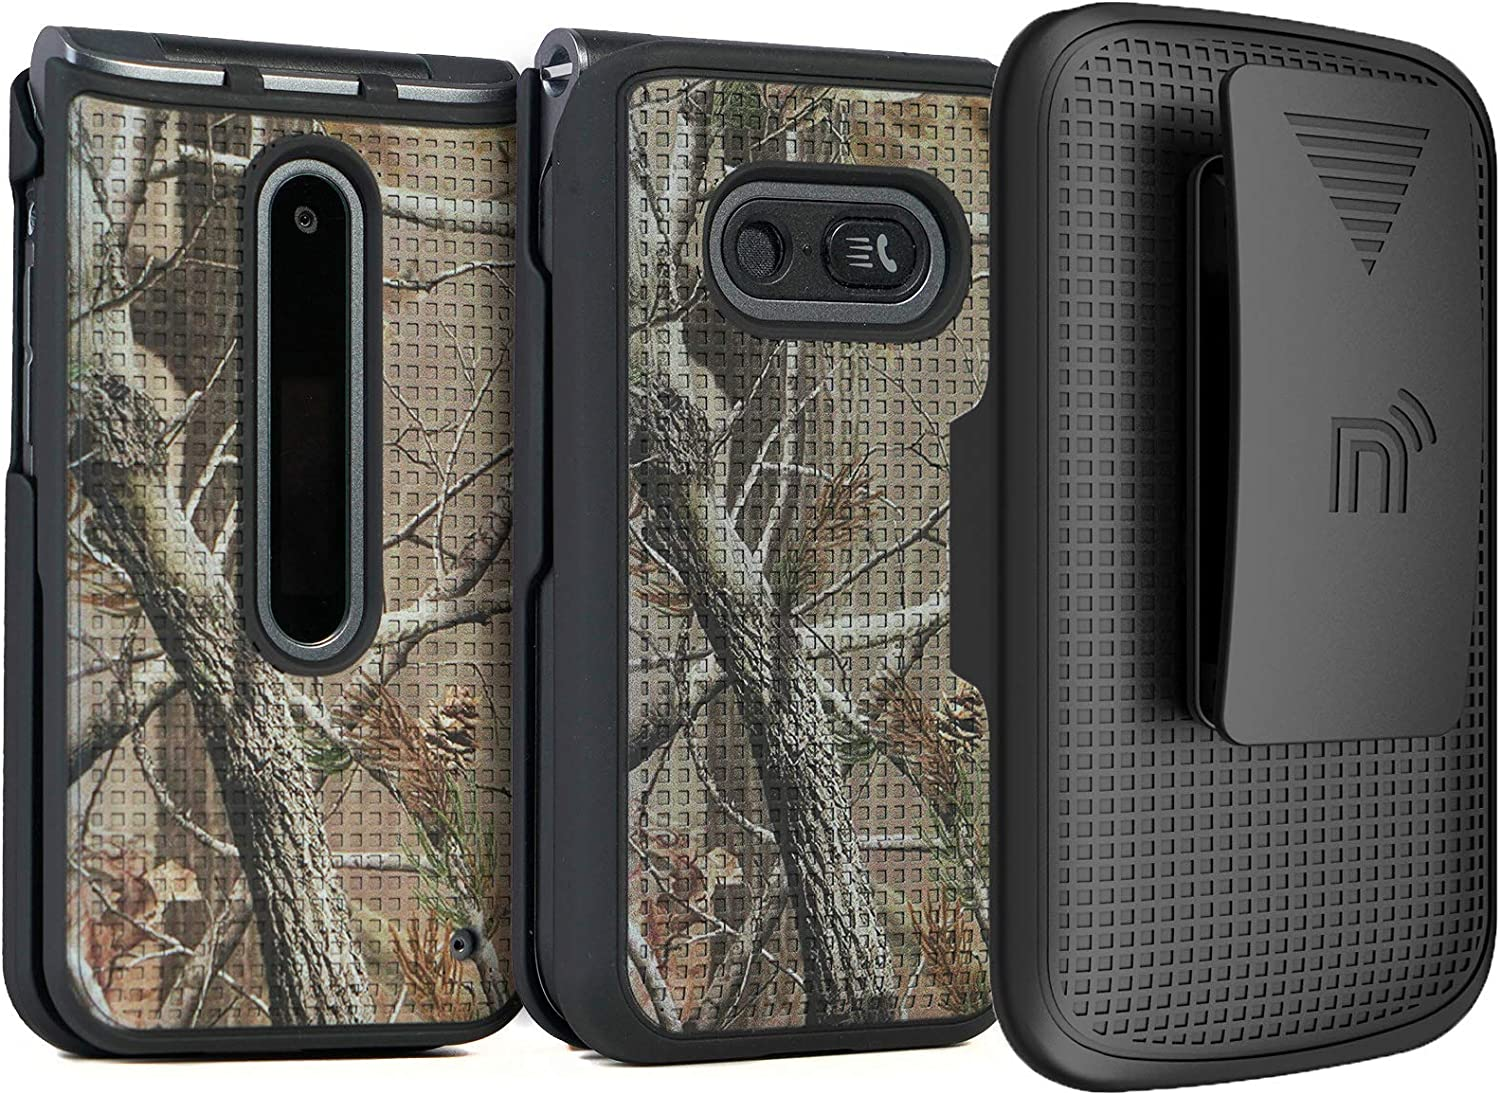 Case with Clip for LG Classic Flip, Nakedcellphone [Outdoor Camouflage] Tree Leaf Real Woods Camo Cover with Belt Hip Holster for LG Classic Flip Phone L125DL